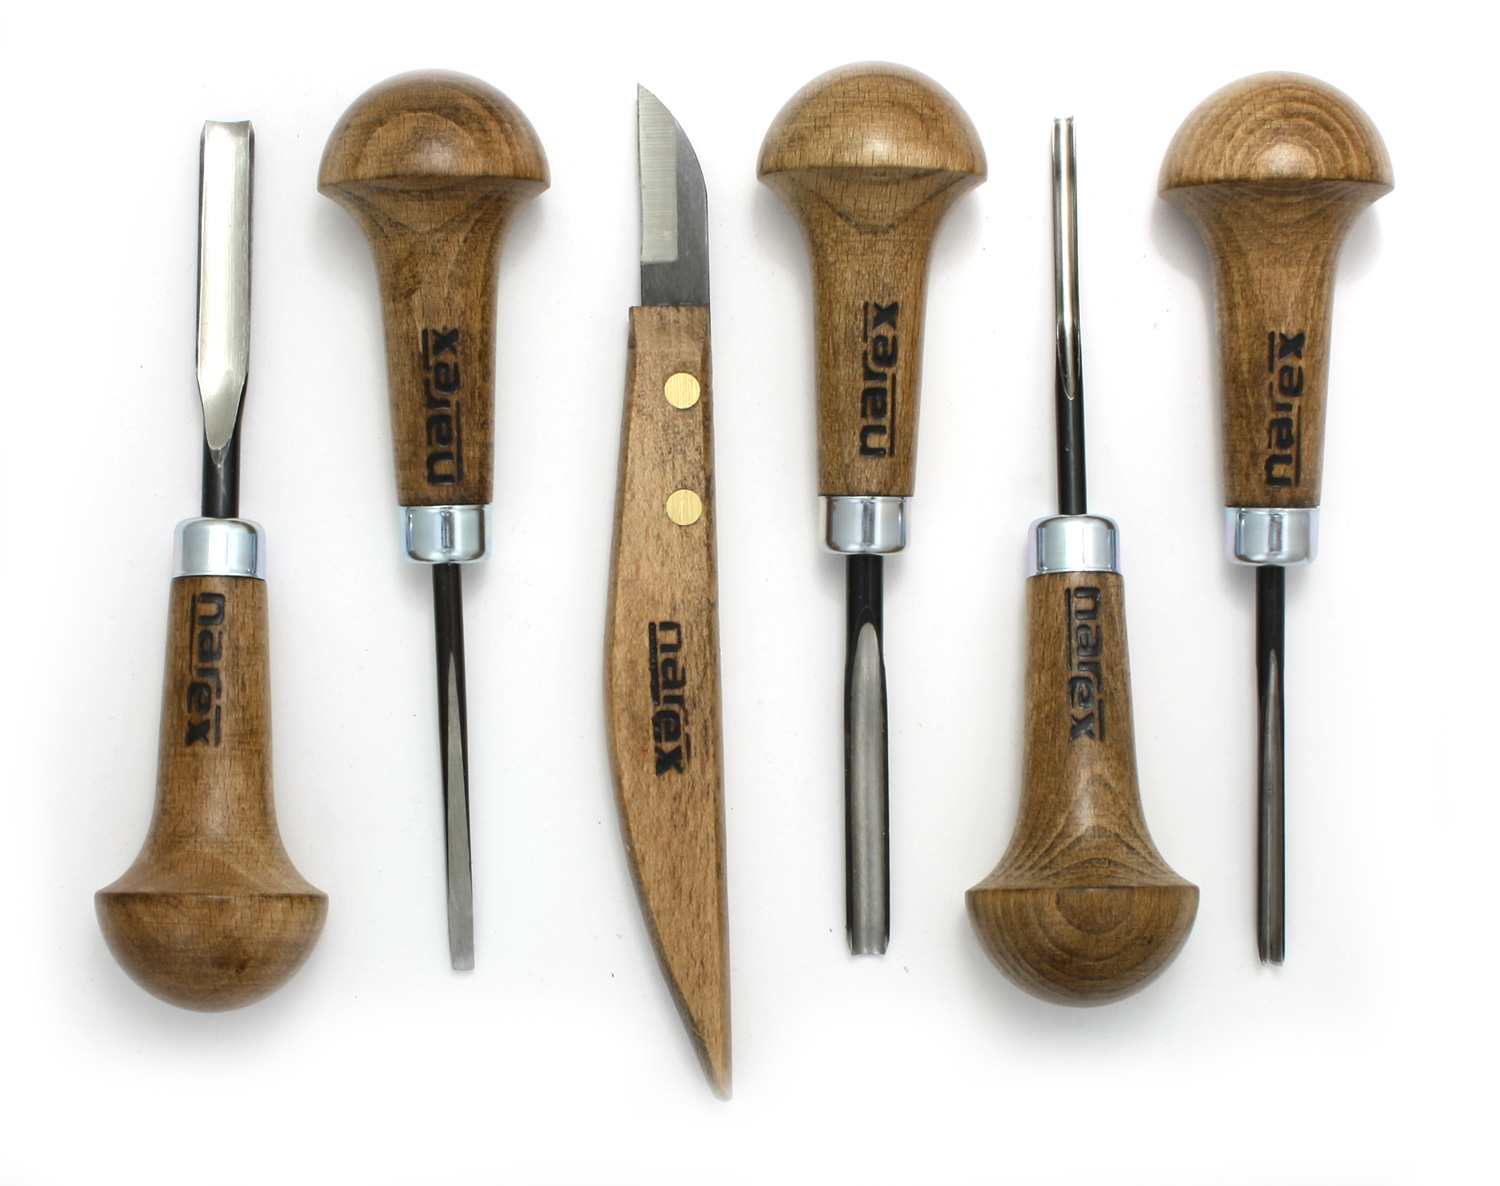 Narex Profi 6 piece Carving Set - TOMACO: The Tool Marketing Company